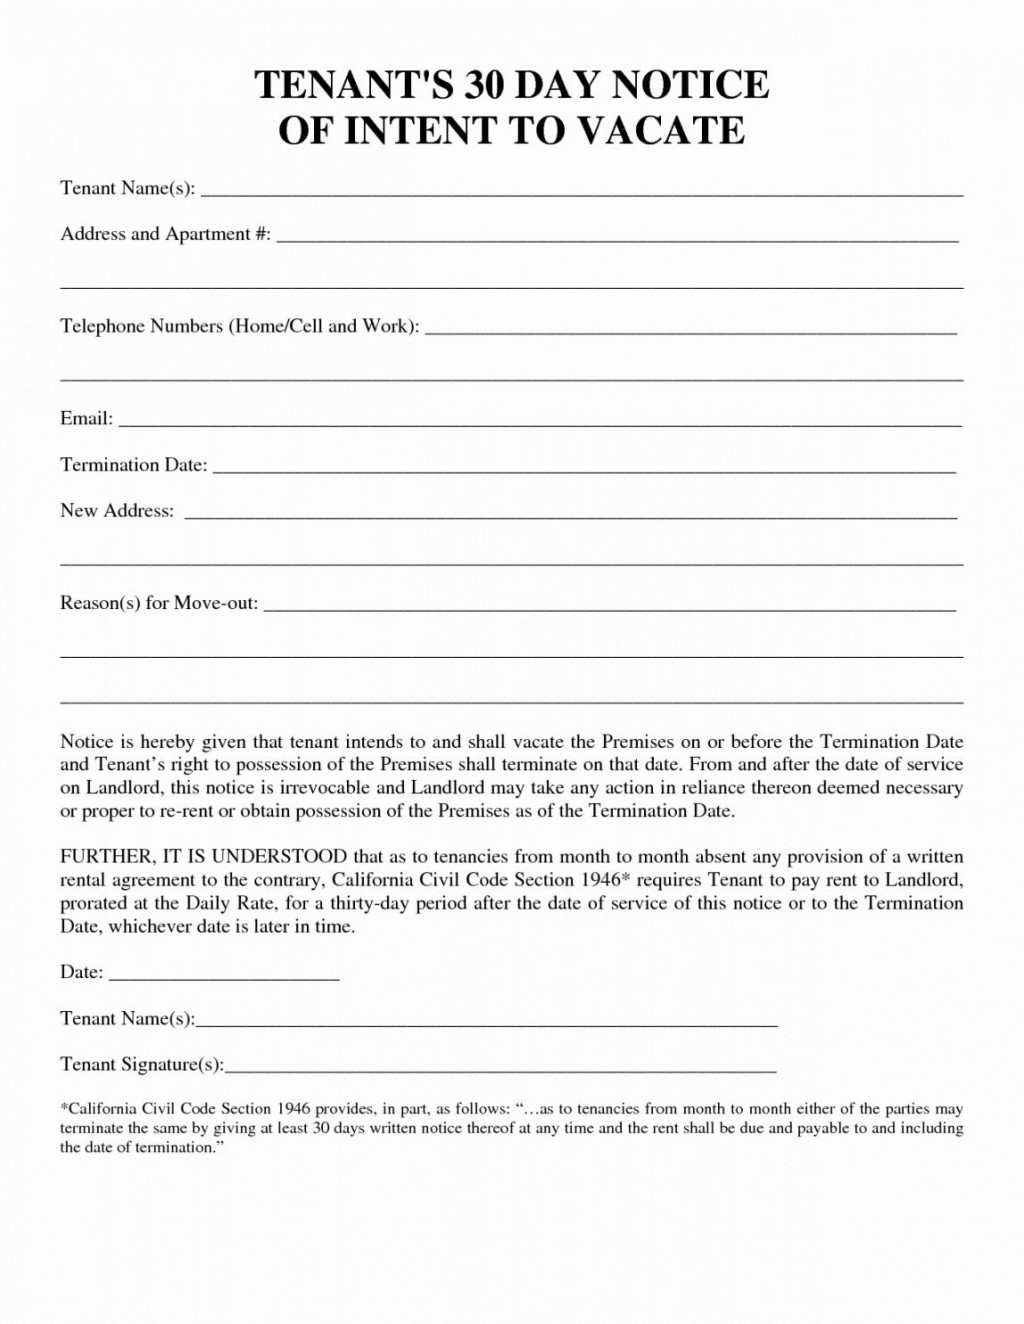 005 Frightening 30 Day Eviction Notice Template Photo  Pdf FormLarge